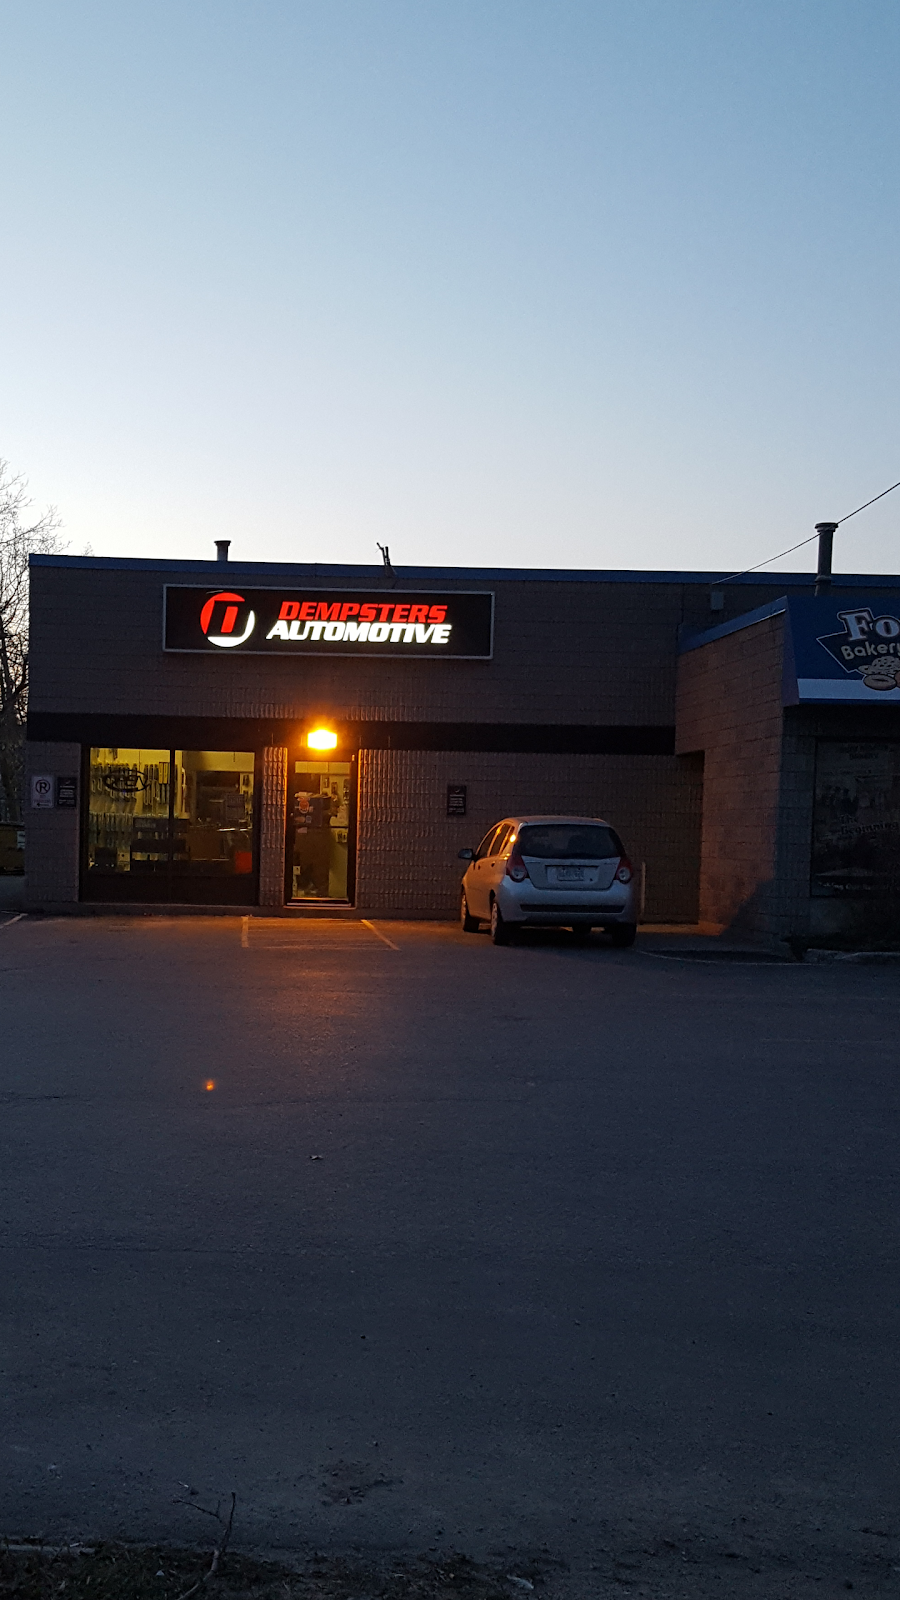 Dempsters Automotive Supplies Ltd | car repair | 98 Victoria St, Barrie, ON L4M 5R4, Canada | 7057370190 OR +1 705-737-0190